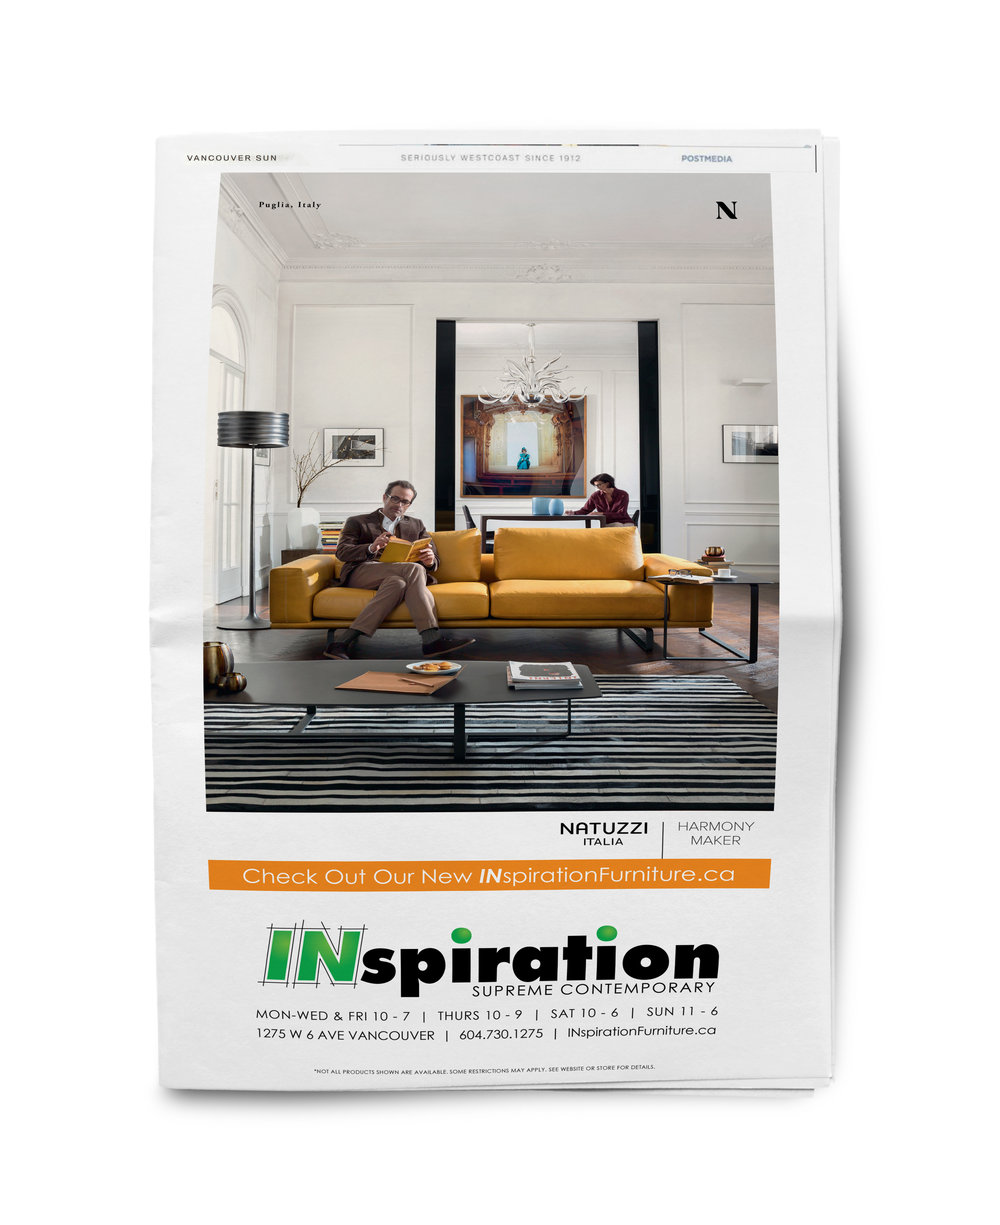 INspiration_Vancouver_Newspaper17.jpg